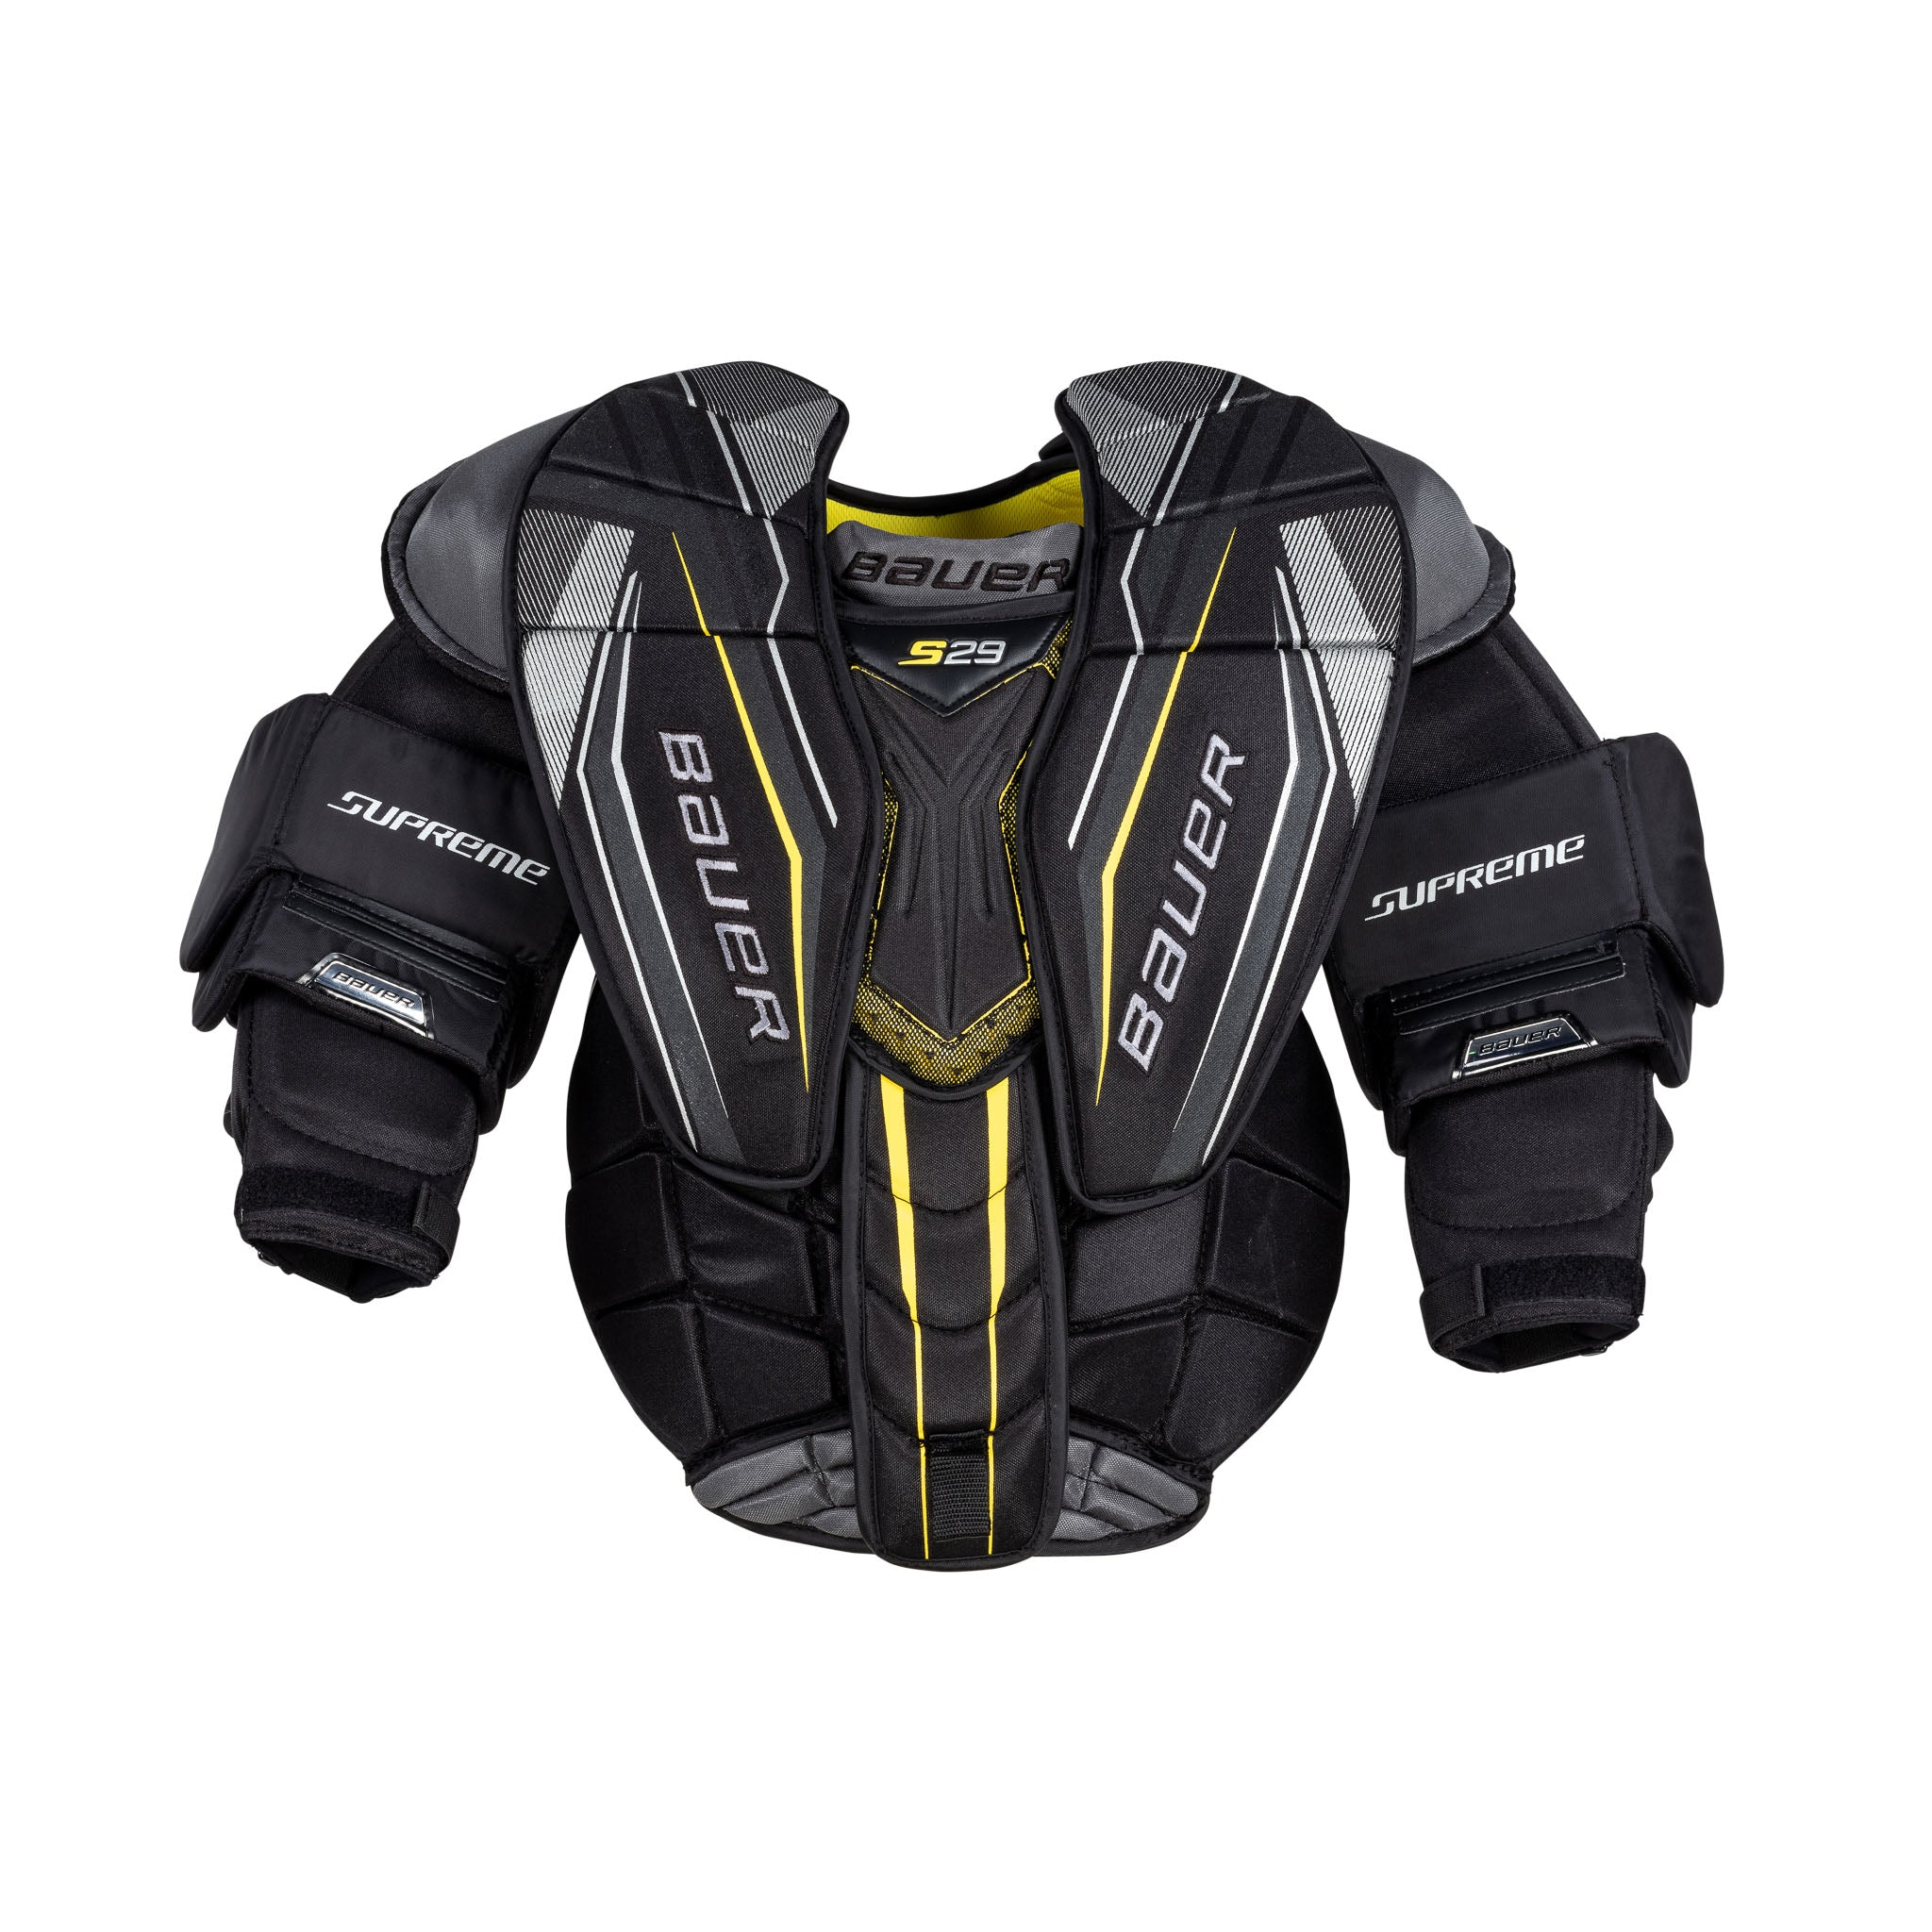 Bauer Supreme S29 Intermediate Chest & Arm Protector